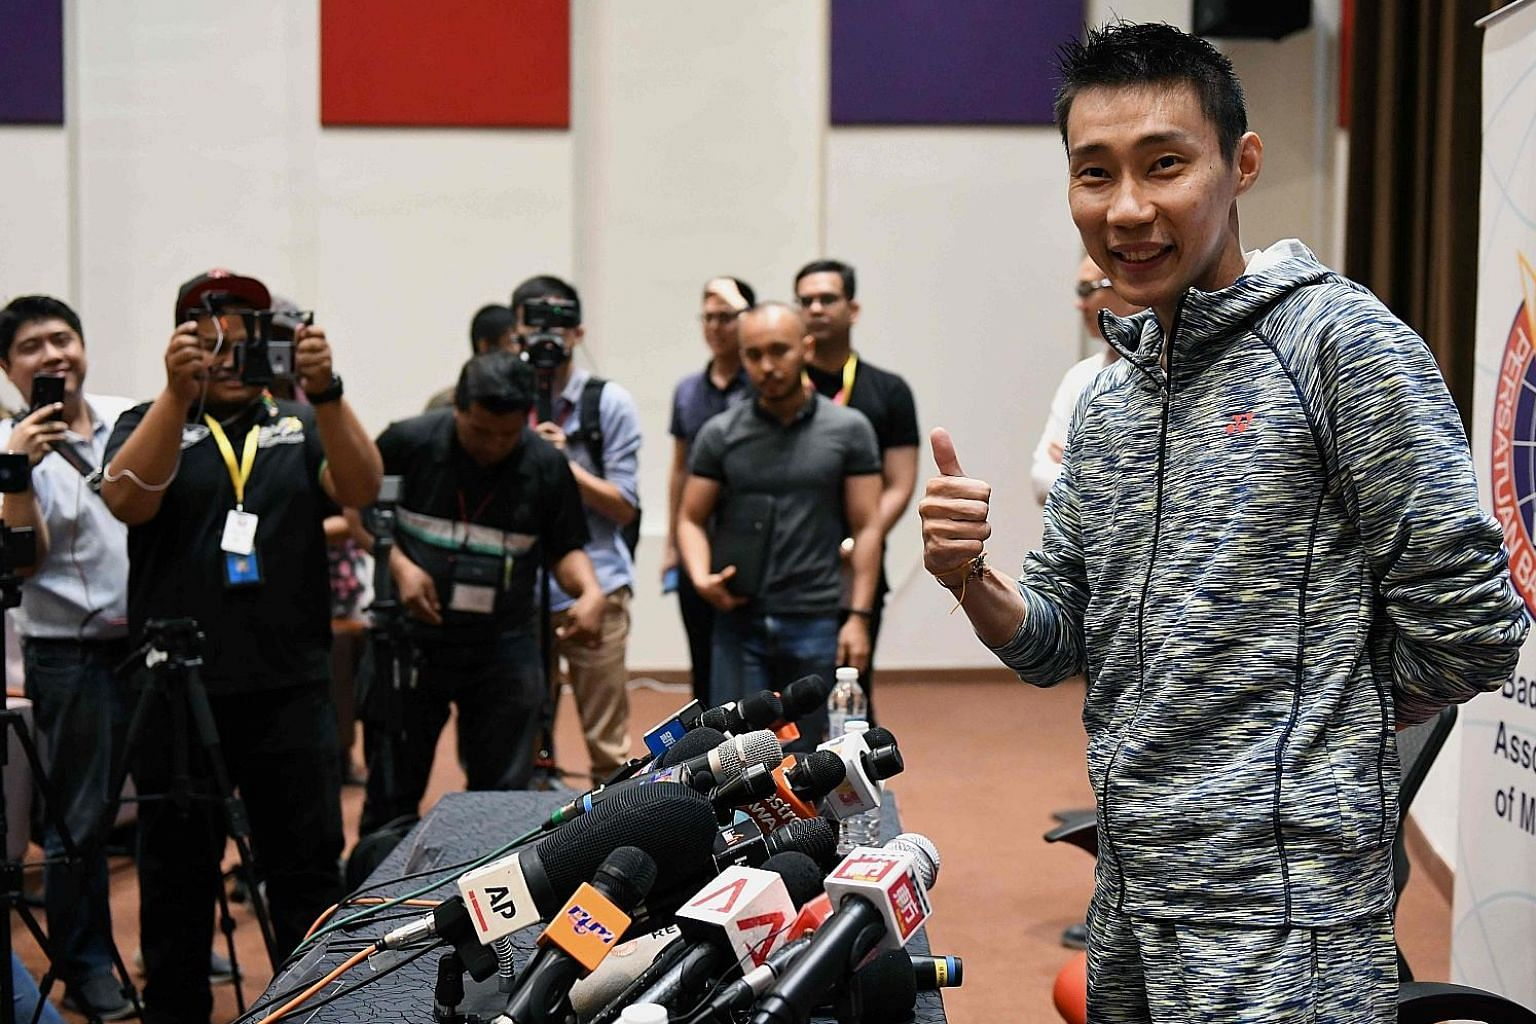 All's well with Lee Chong Wei after his press conference on Nov 8. The badminton star had been diagnosed with cancer in July but has since recovered.